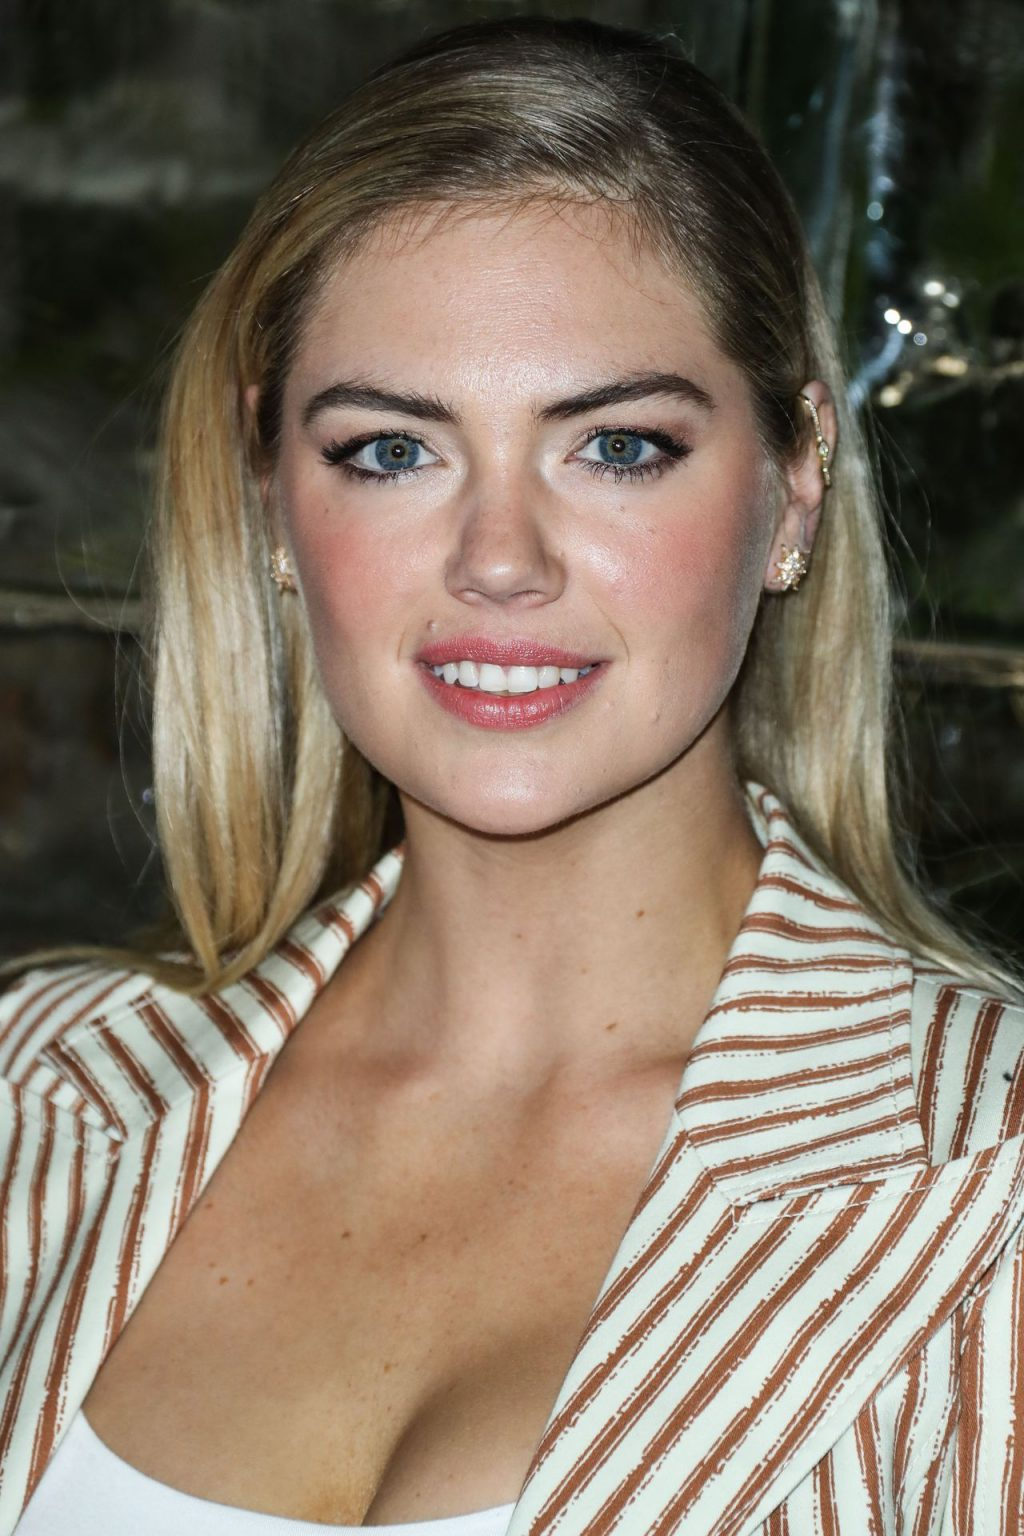 Kate Upton Sexy The Fappening Blog 95 1024x1536 - Kate Upton Attends Canada Goose And Vogue Cocktails & Conversations (104 Photos)